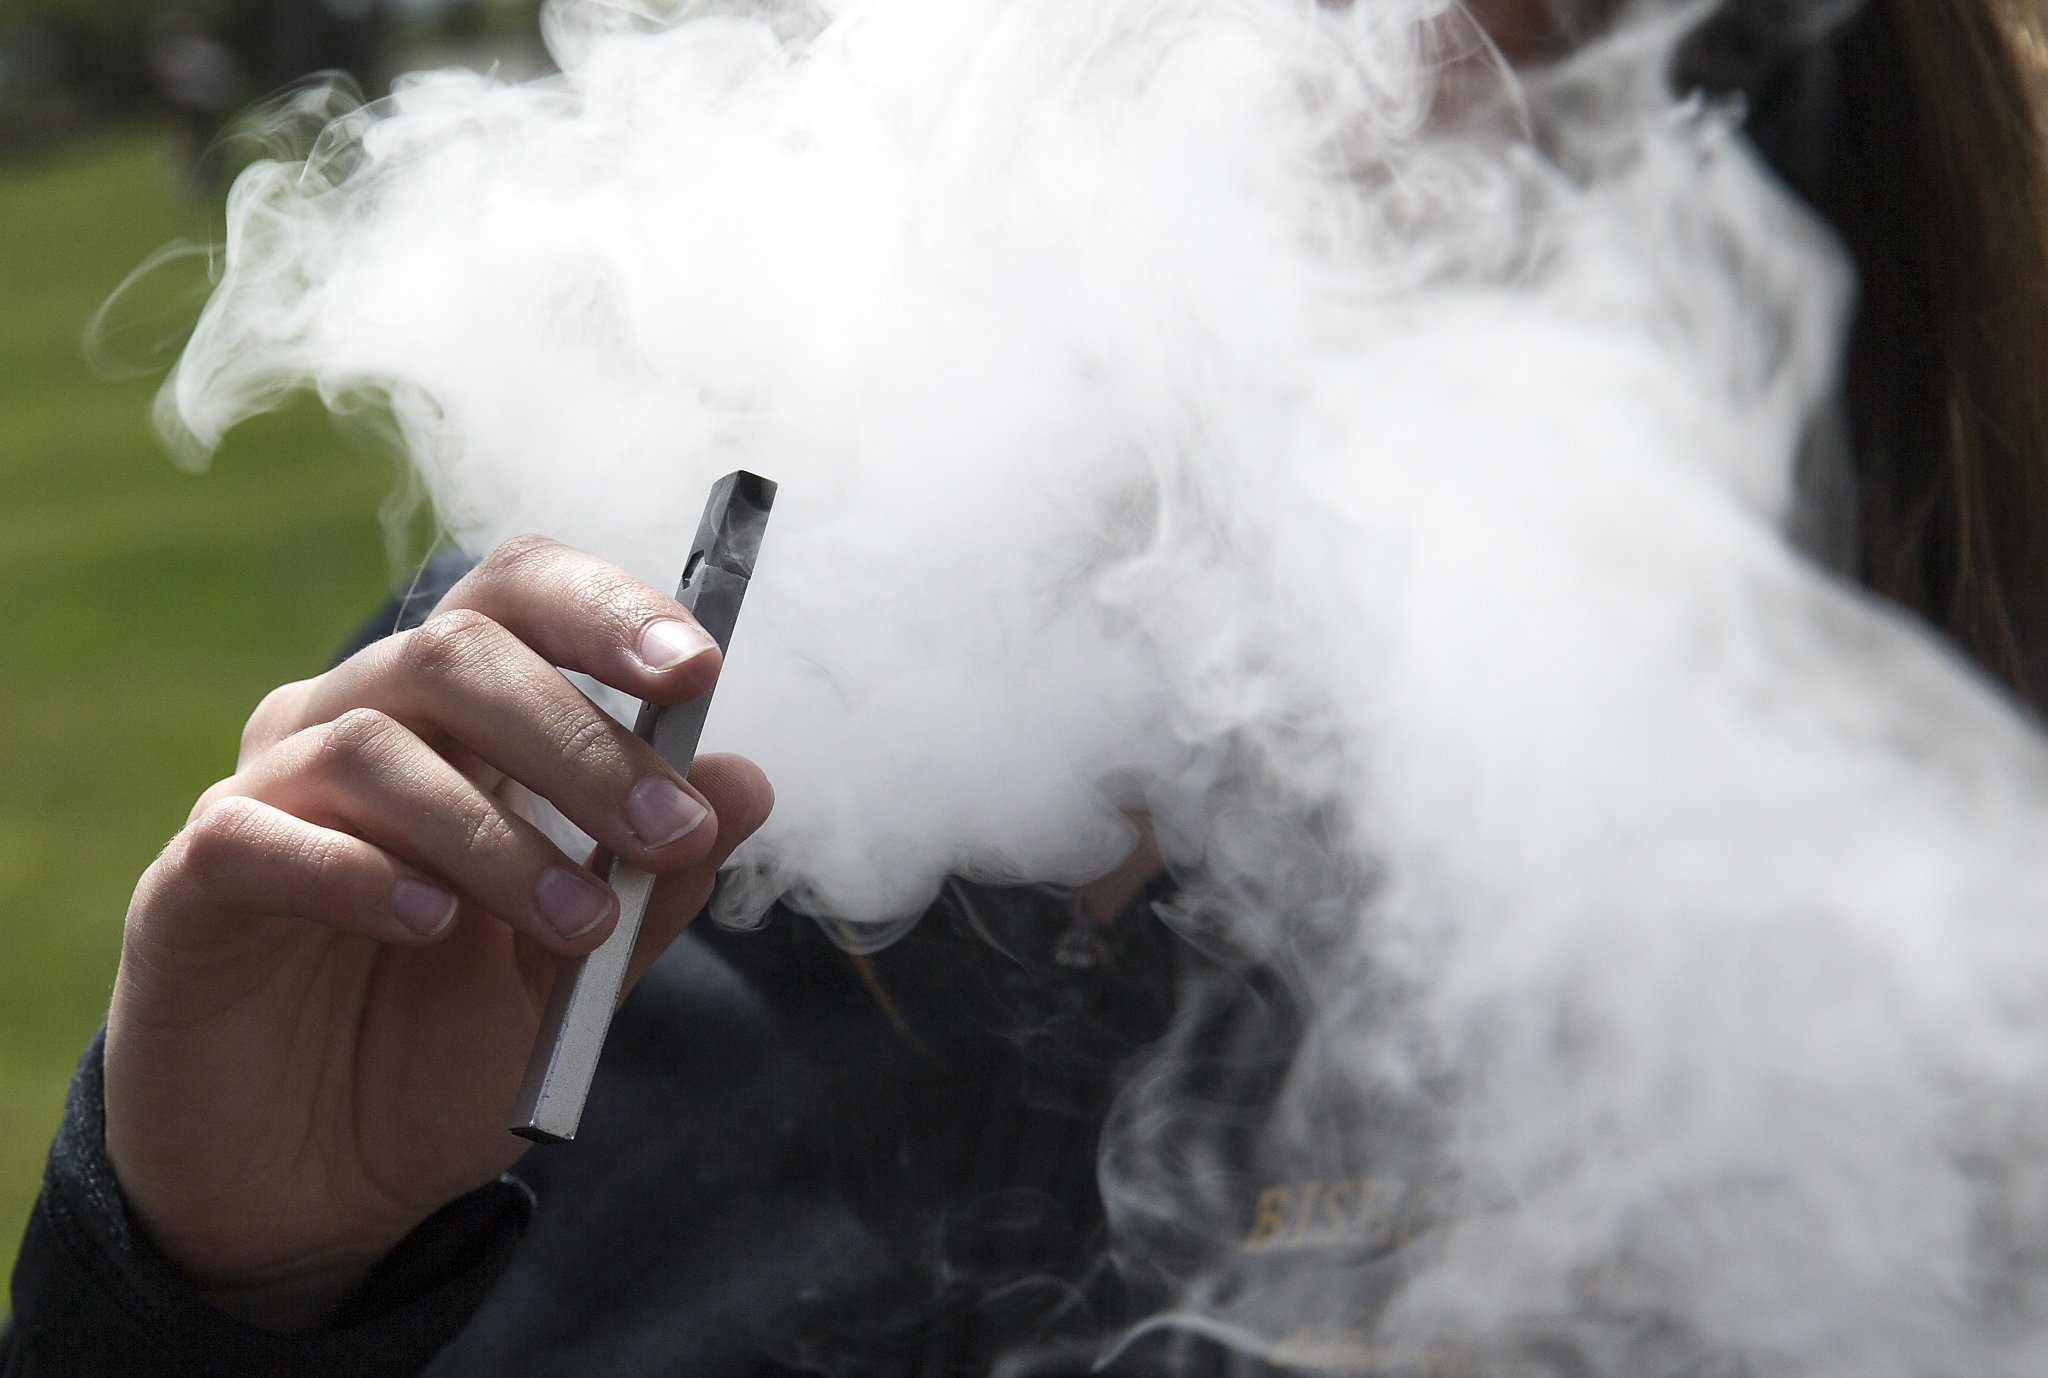 As Juul vaping surges among teens, health concerns grow